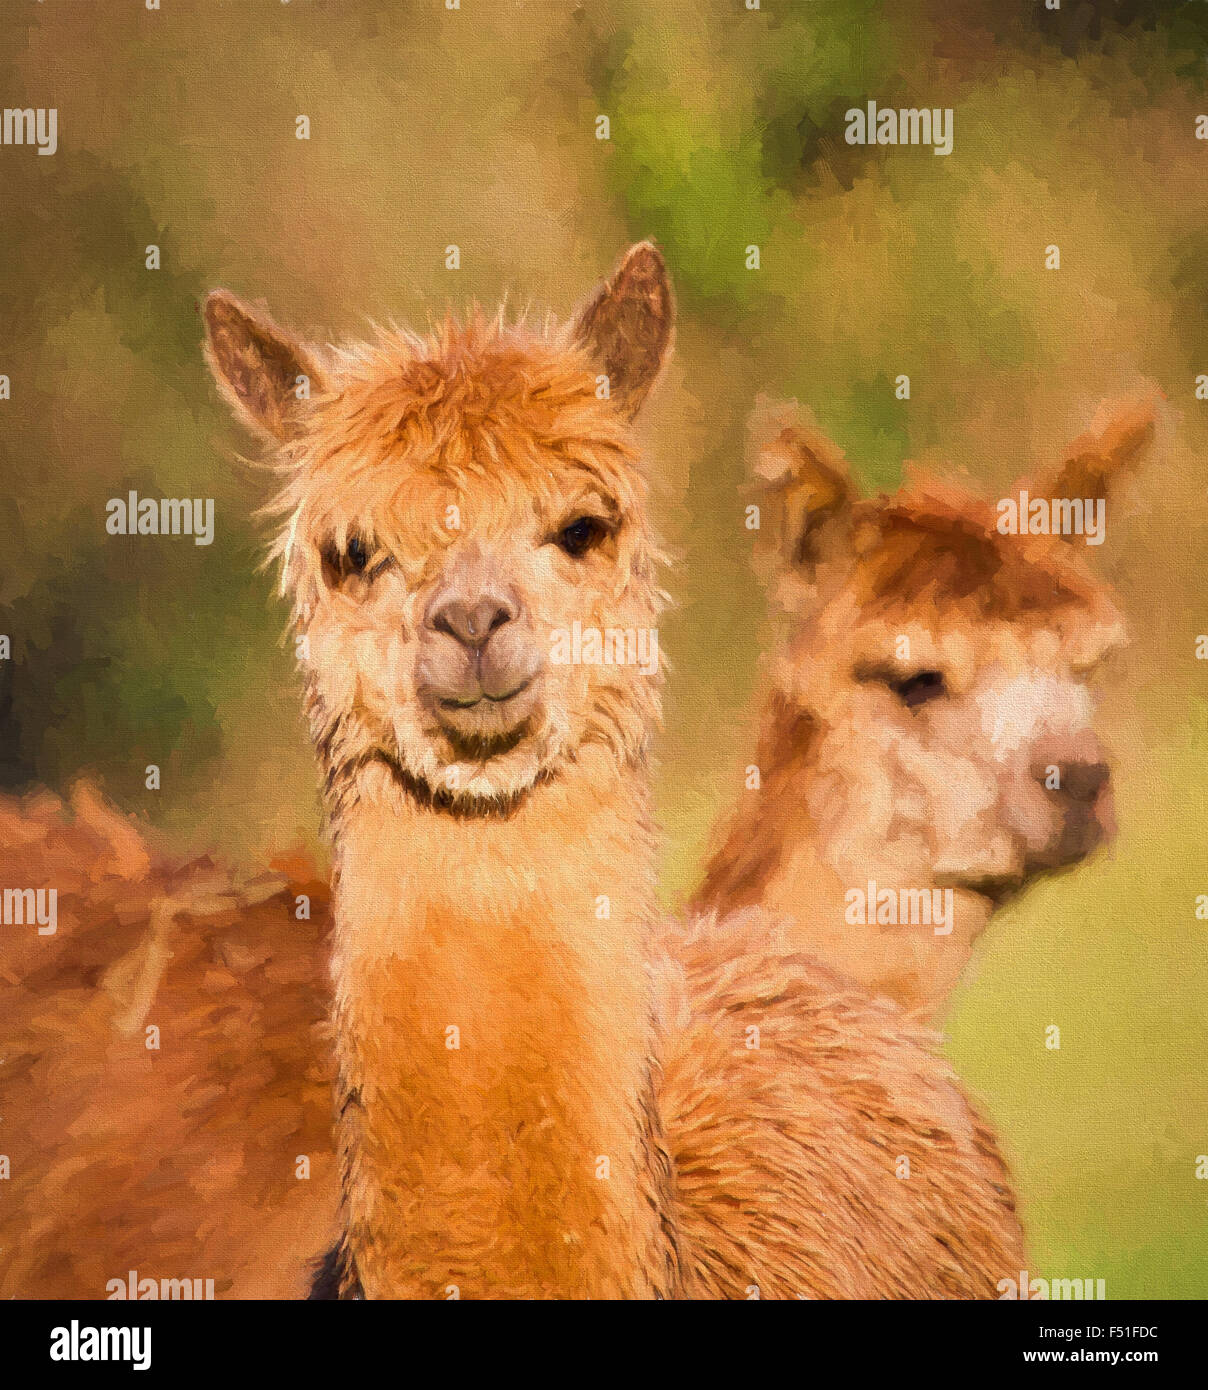 Brown Alpacas portrait similar to llama illustration like oil painting - Stock Image